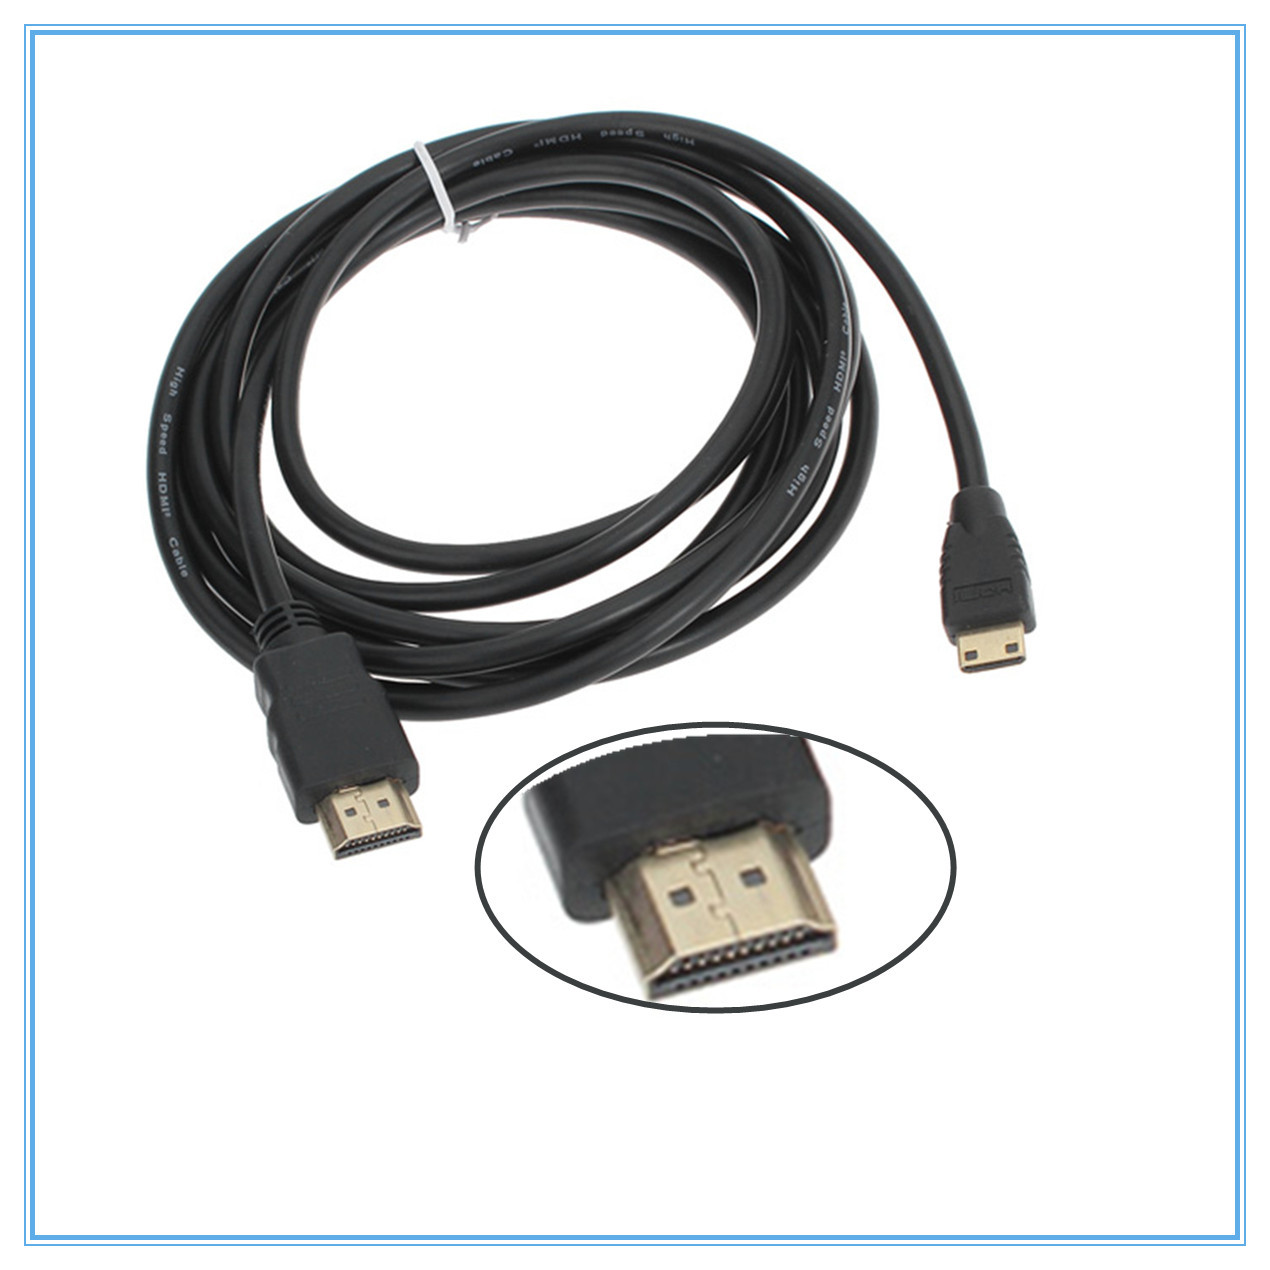 Mini Hdmi To Cable 3 Meters 1080p Hd Data Transfer Line Wiring Wire For Tv Lcd Pc Ps3 In Cables From Consumer Electronics On